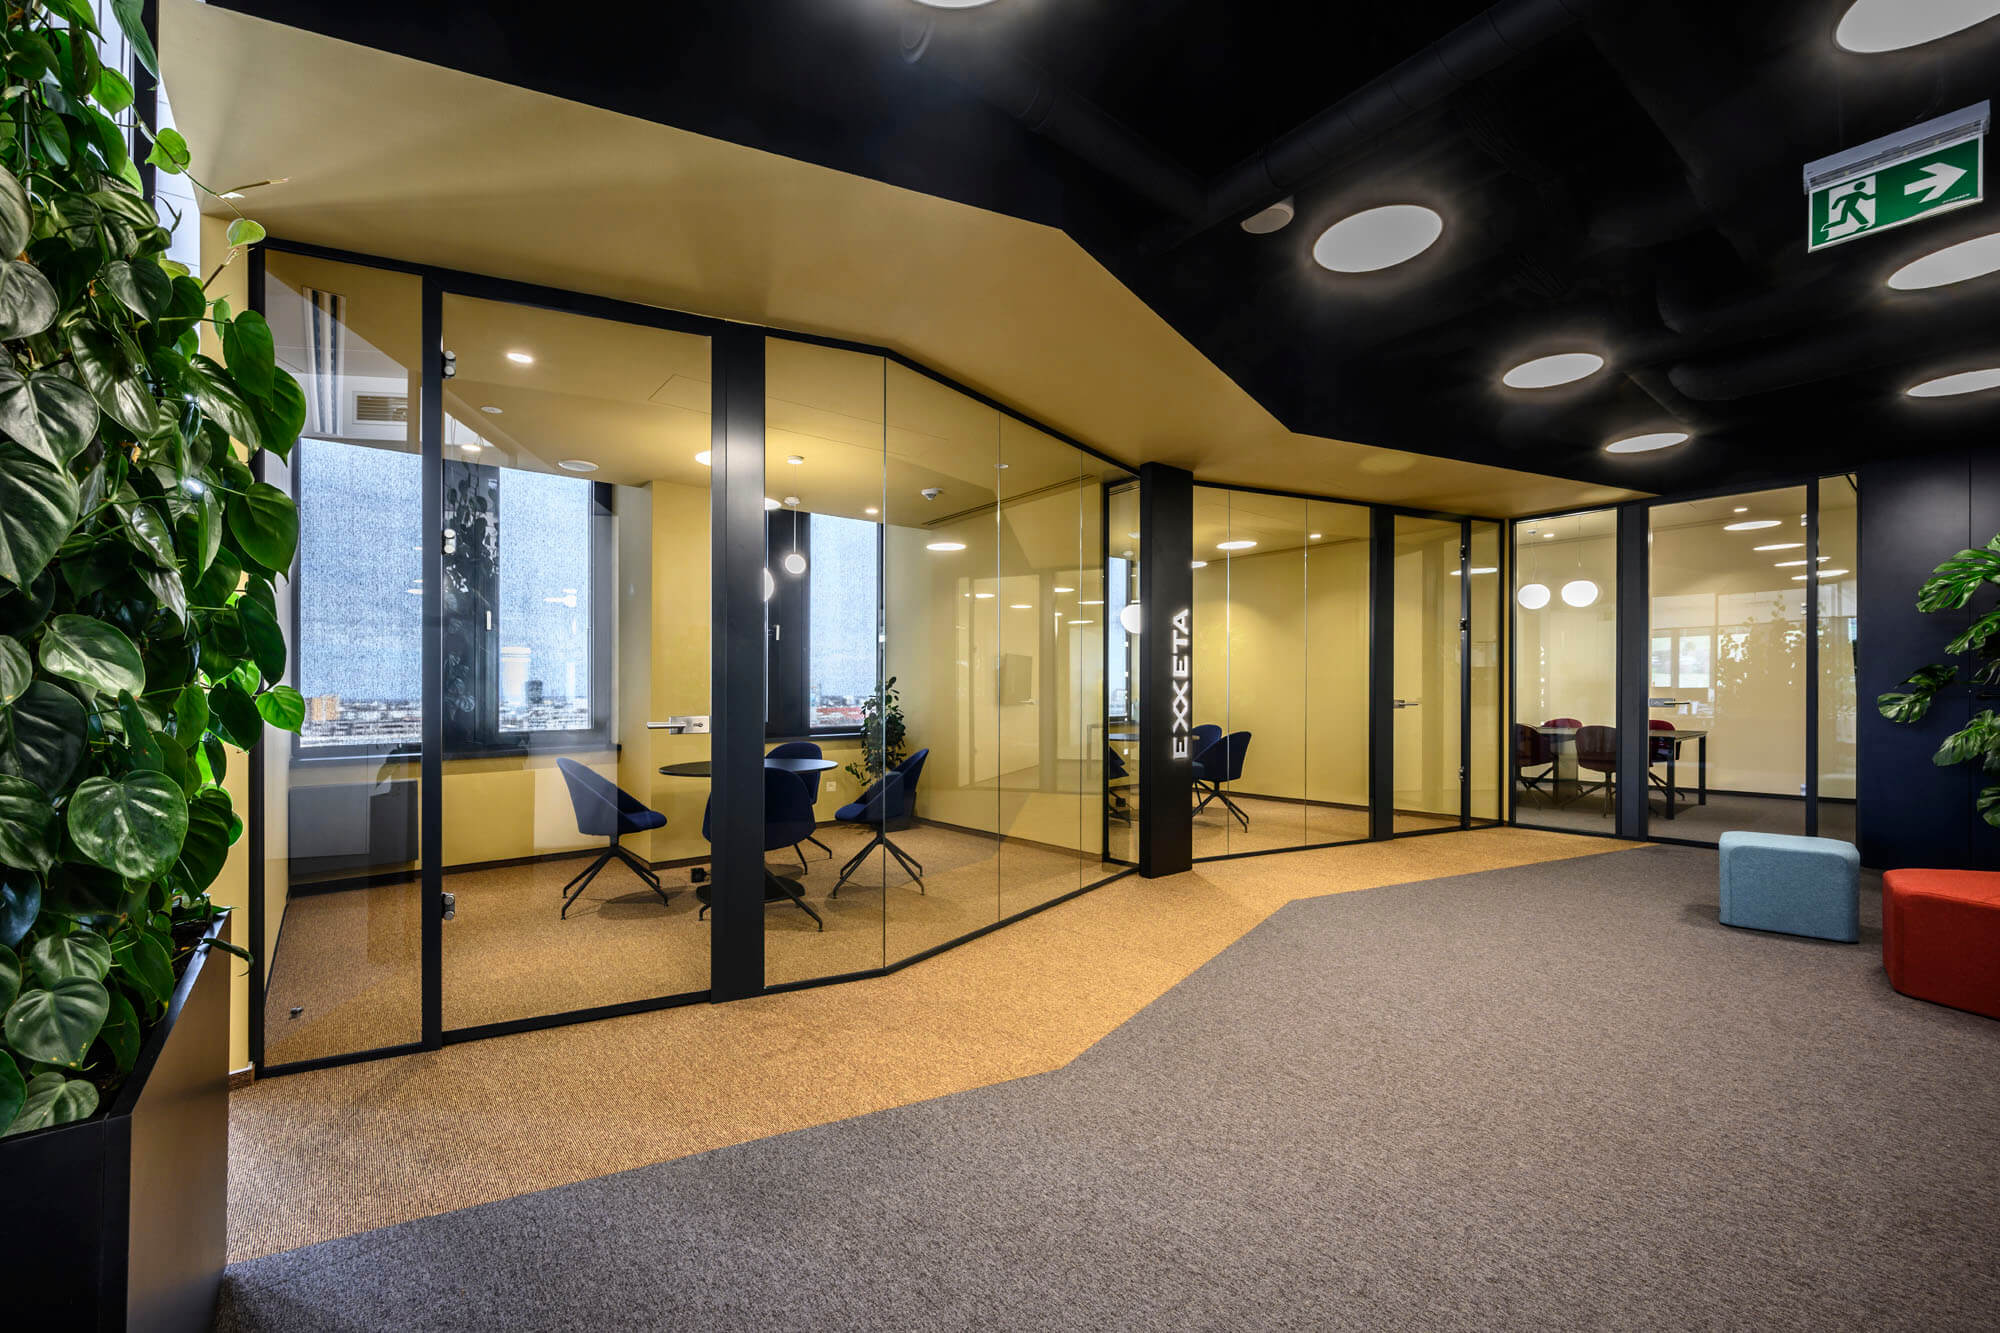 Pleasant and functional environment with elements of company identity